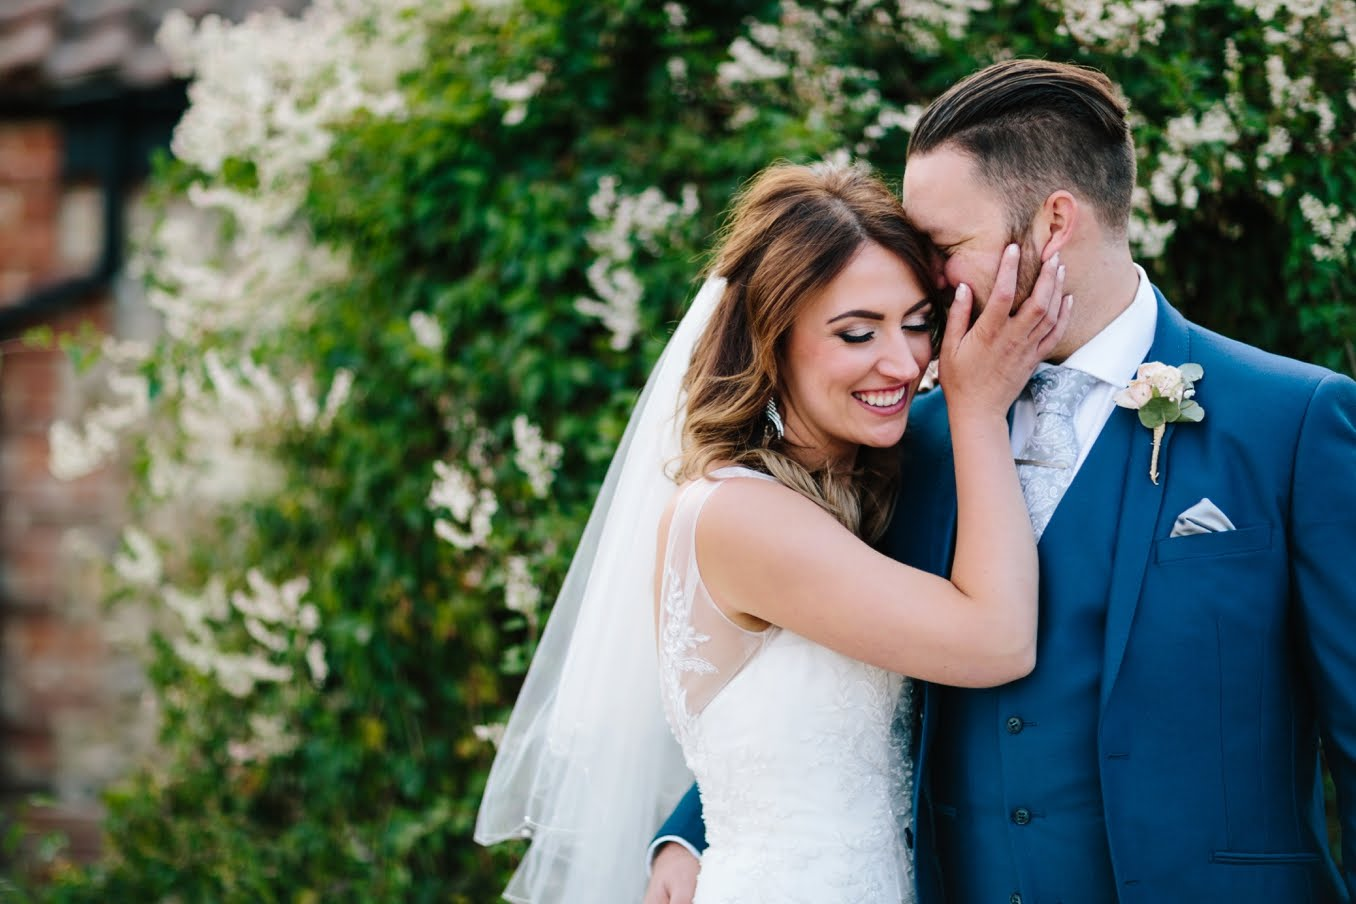 Susie and Mark's gorgeous wedding at Manor Mews Great Barn in Norfolk, UK. Photo by STUDIO 1208